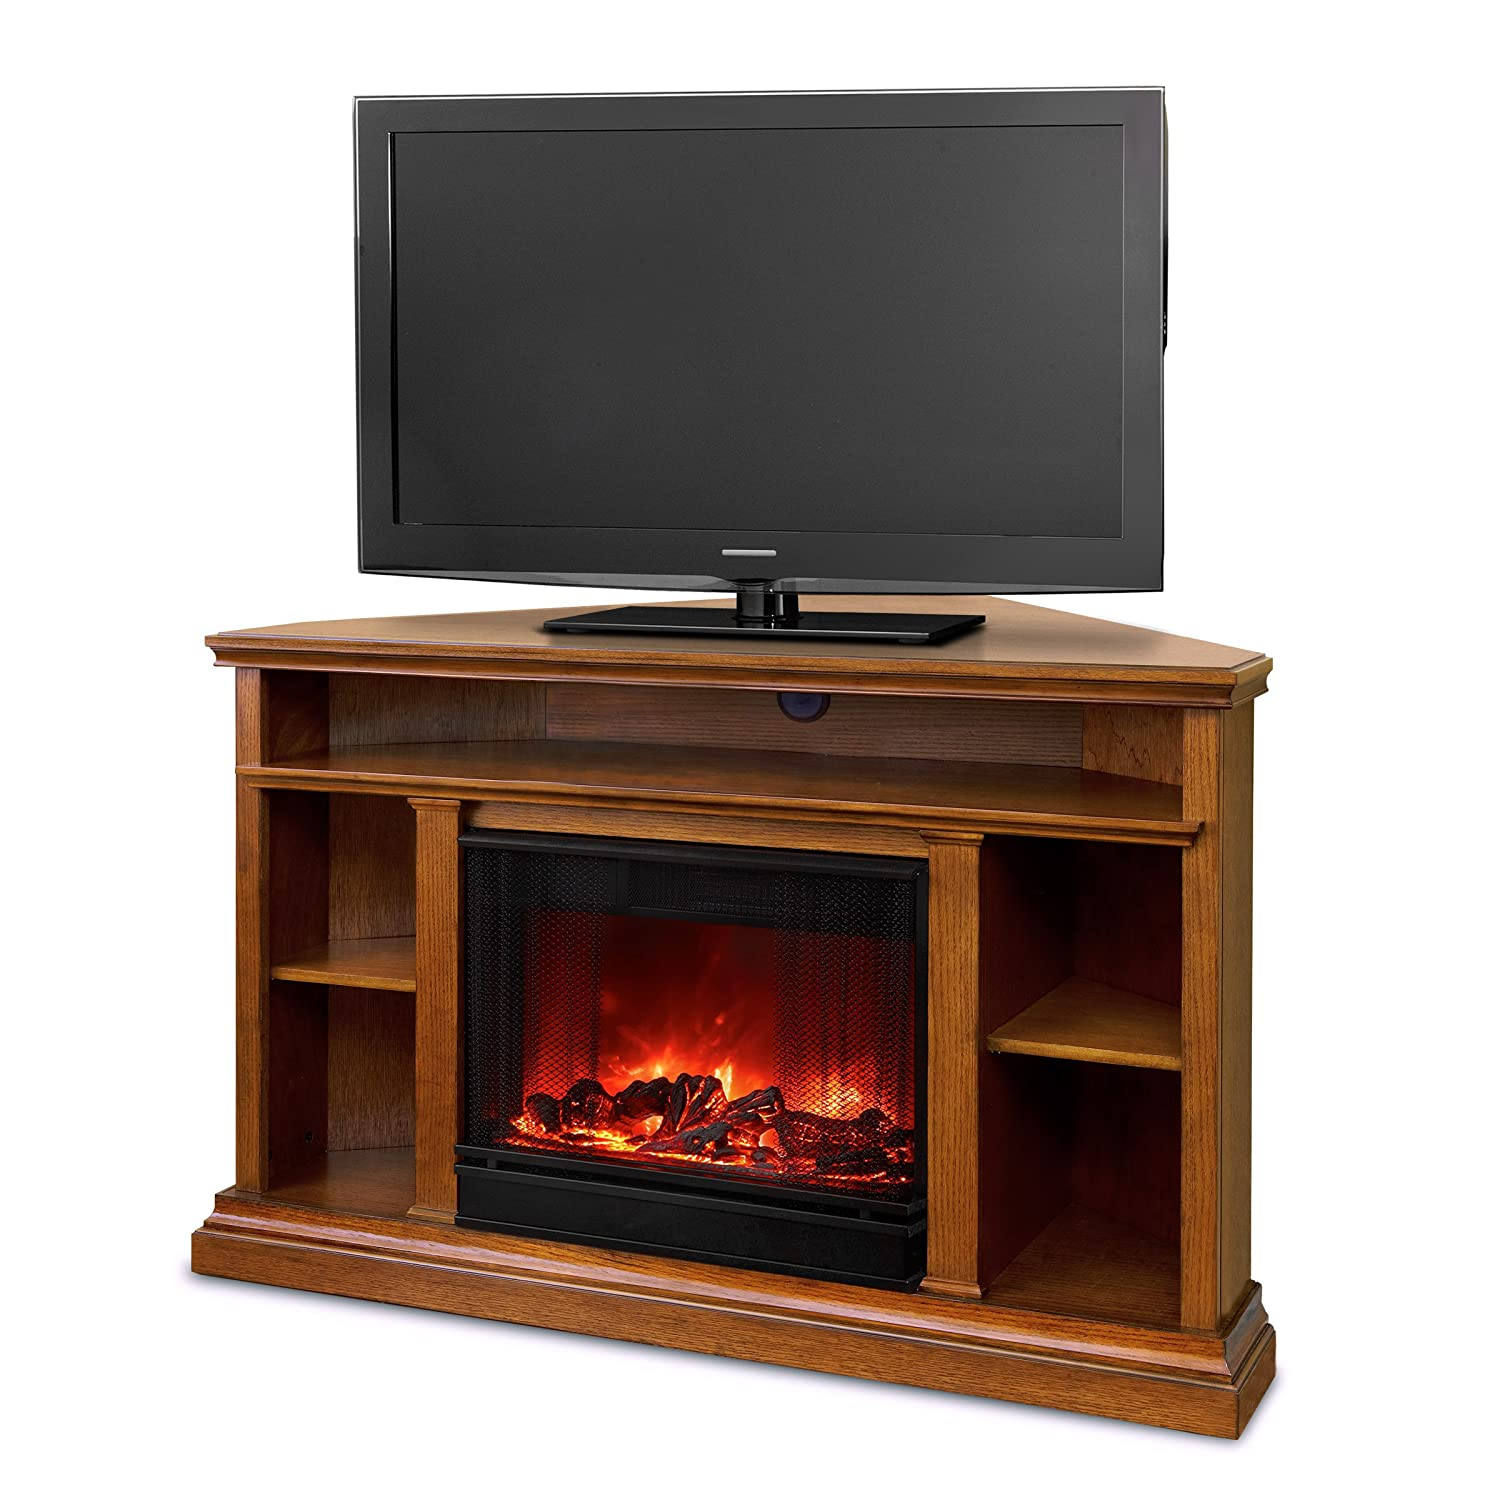 Amazon.com: Real Flame 3750E-O Churchill Electric Fireplace: Kitchen & Dining